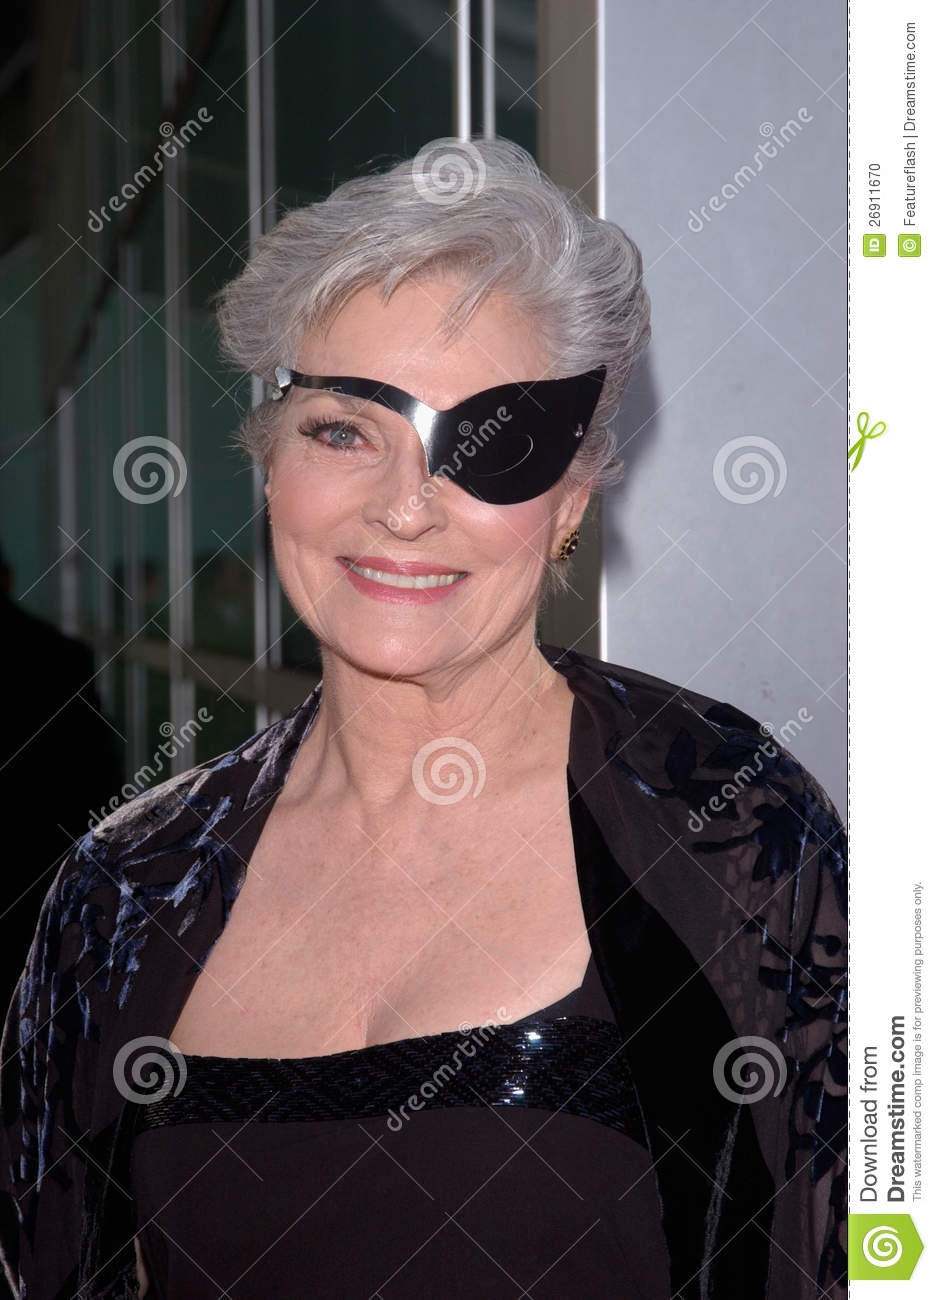 lee meriwether batman